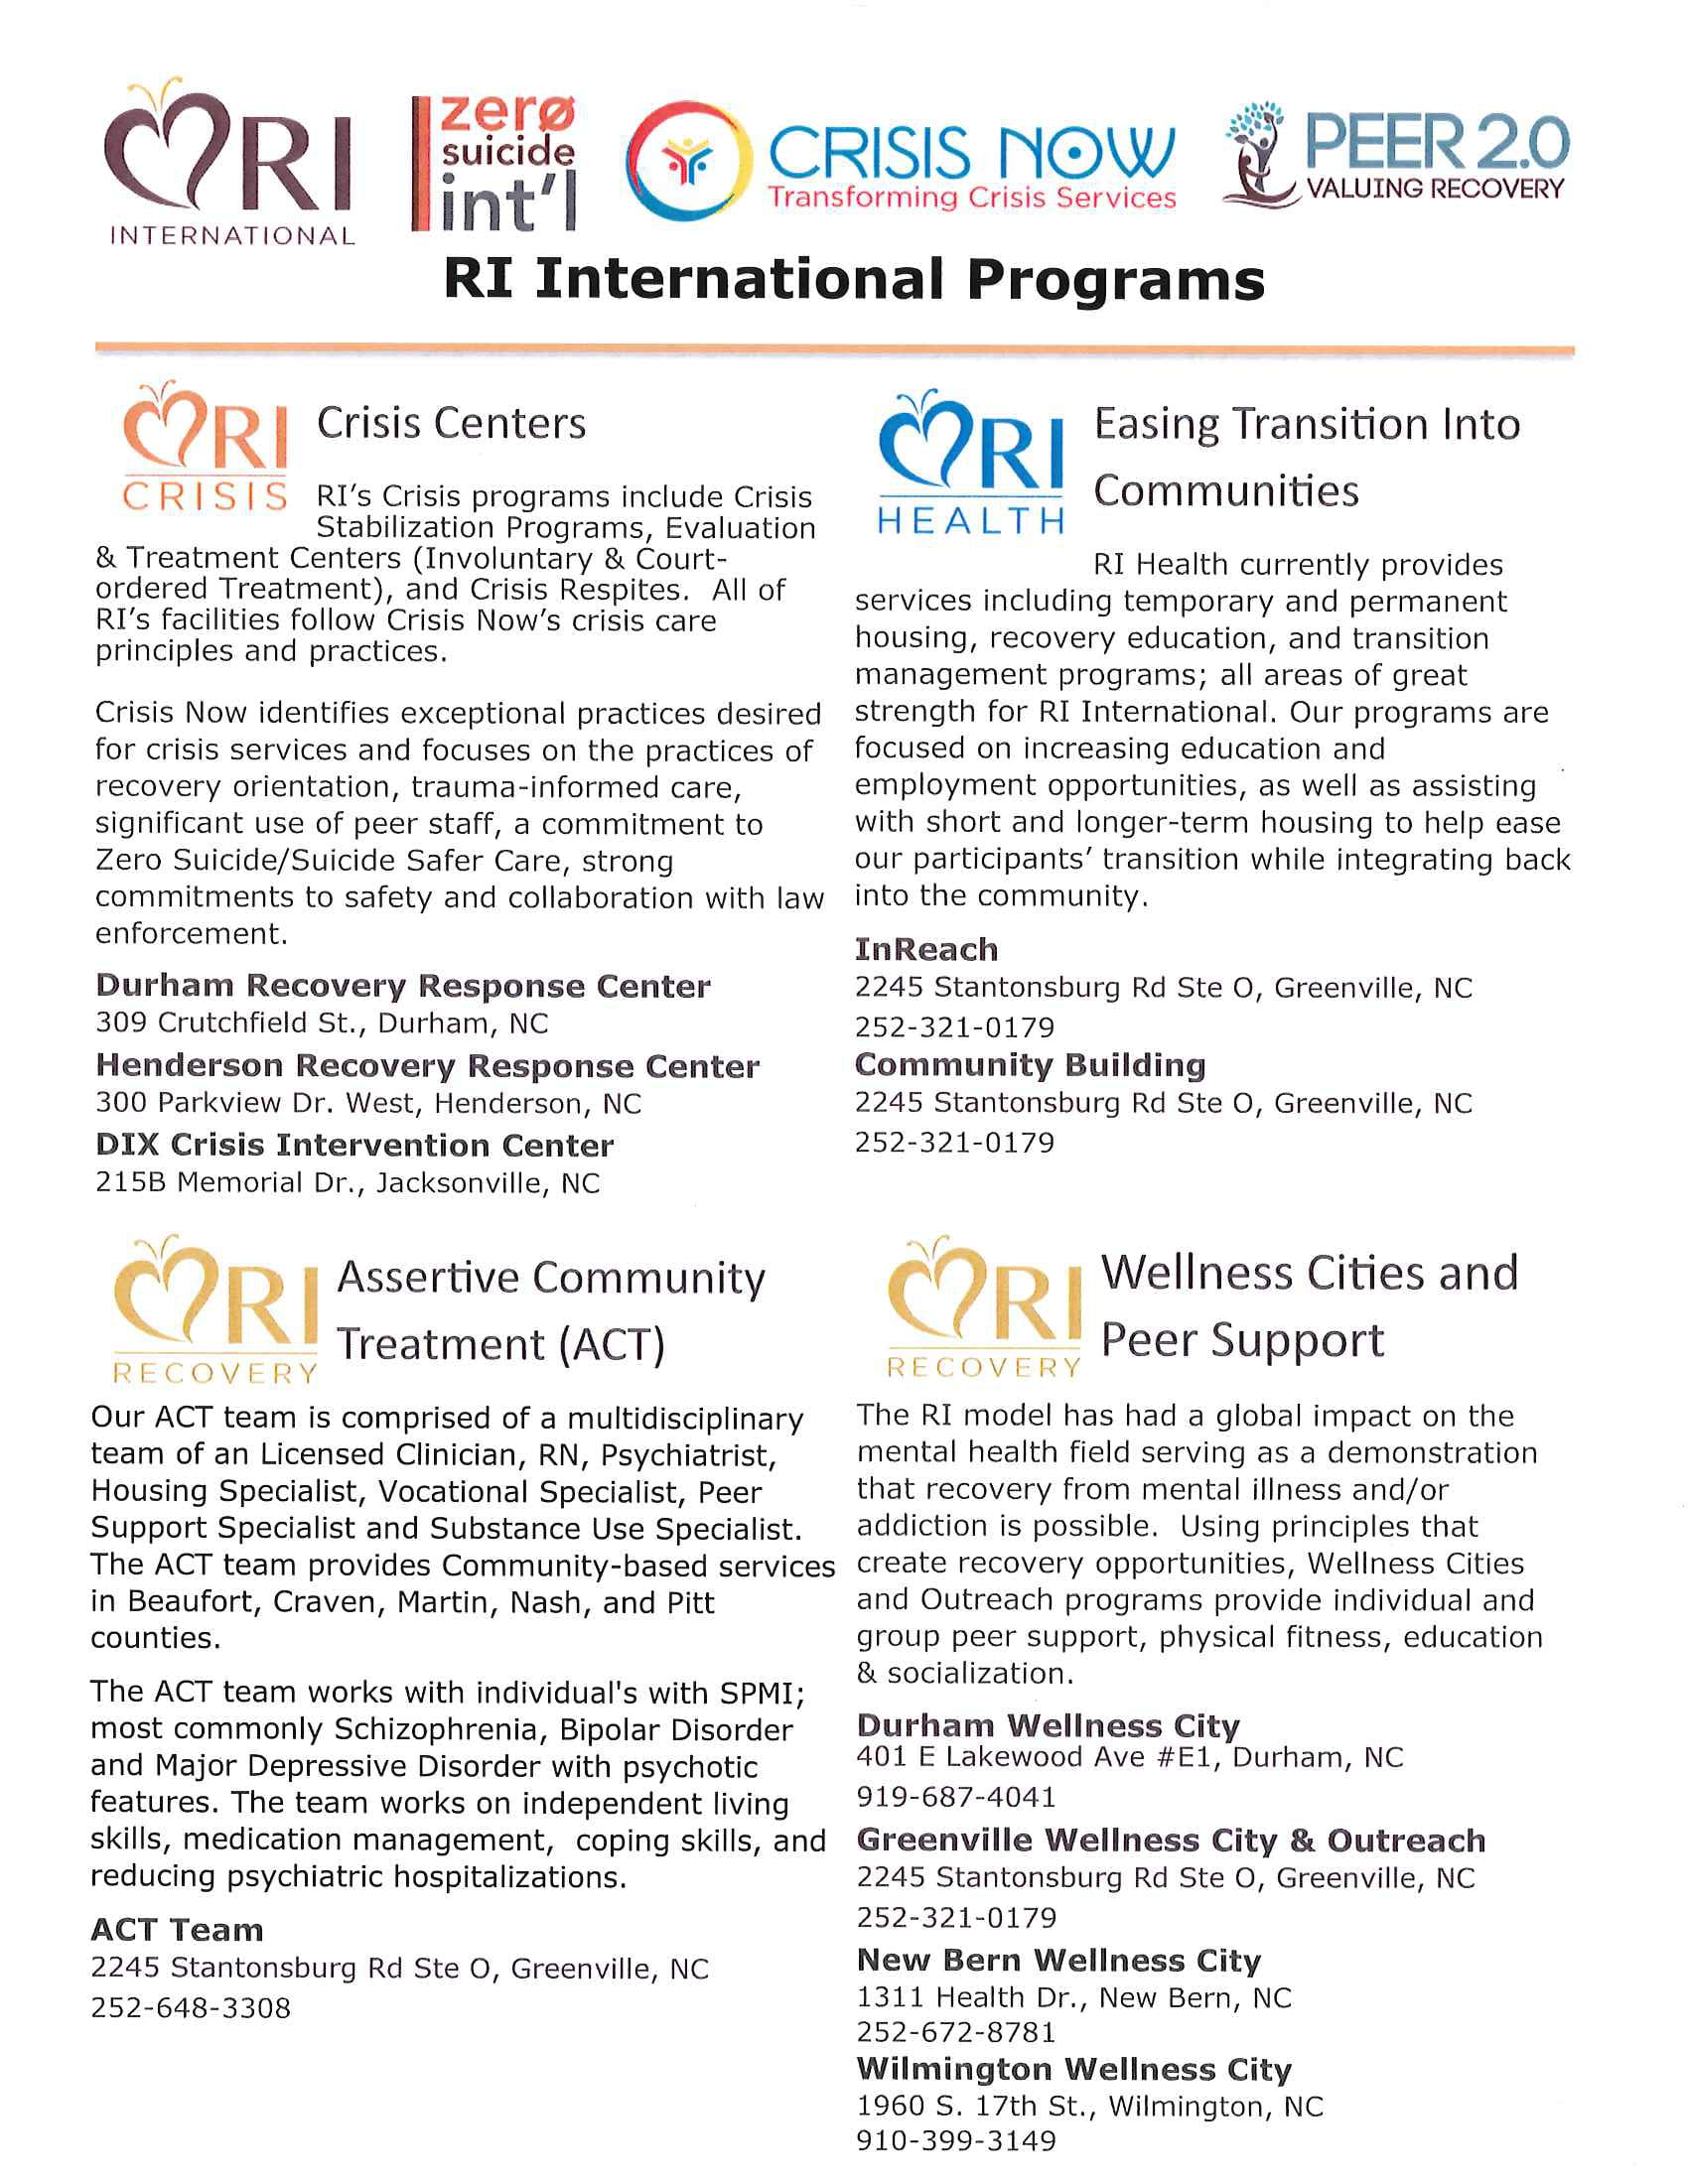 Dix Crisis Center Intervention Handout Page 2